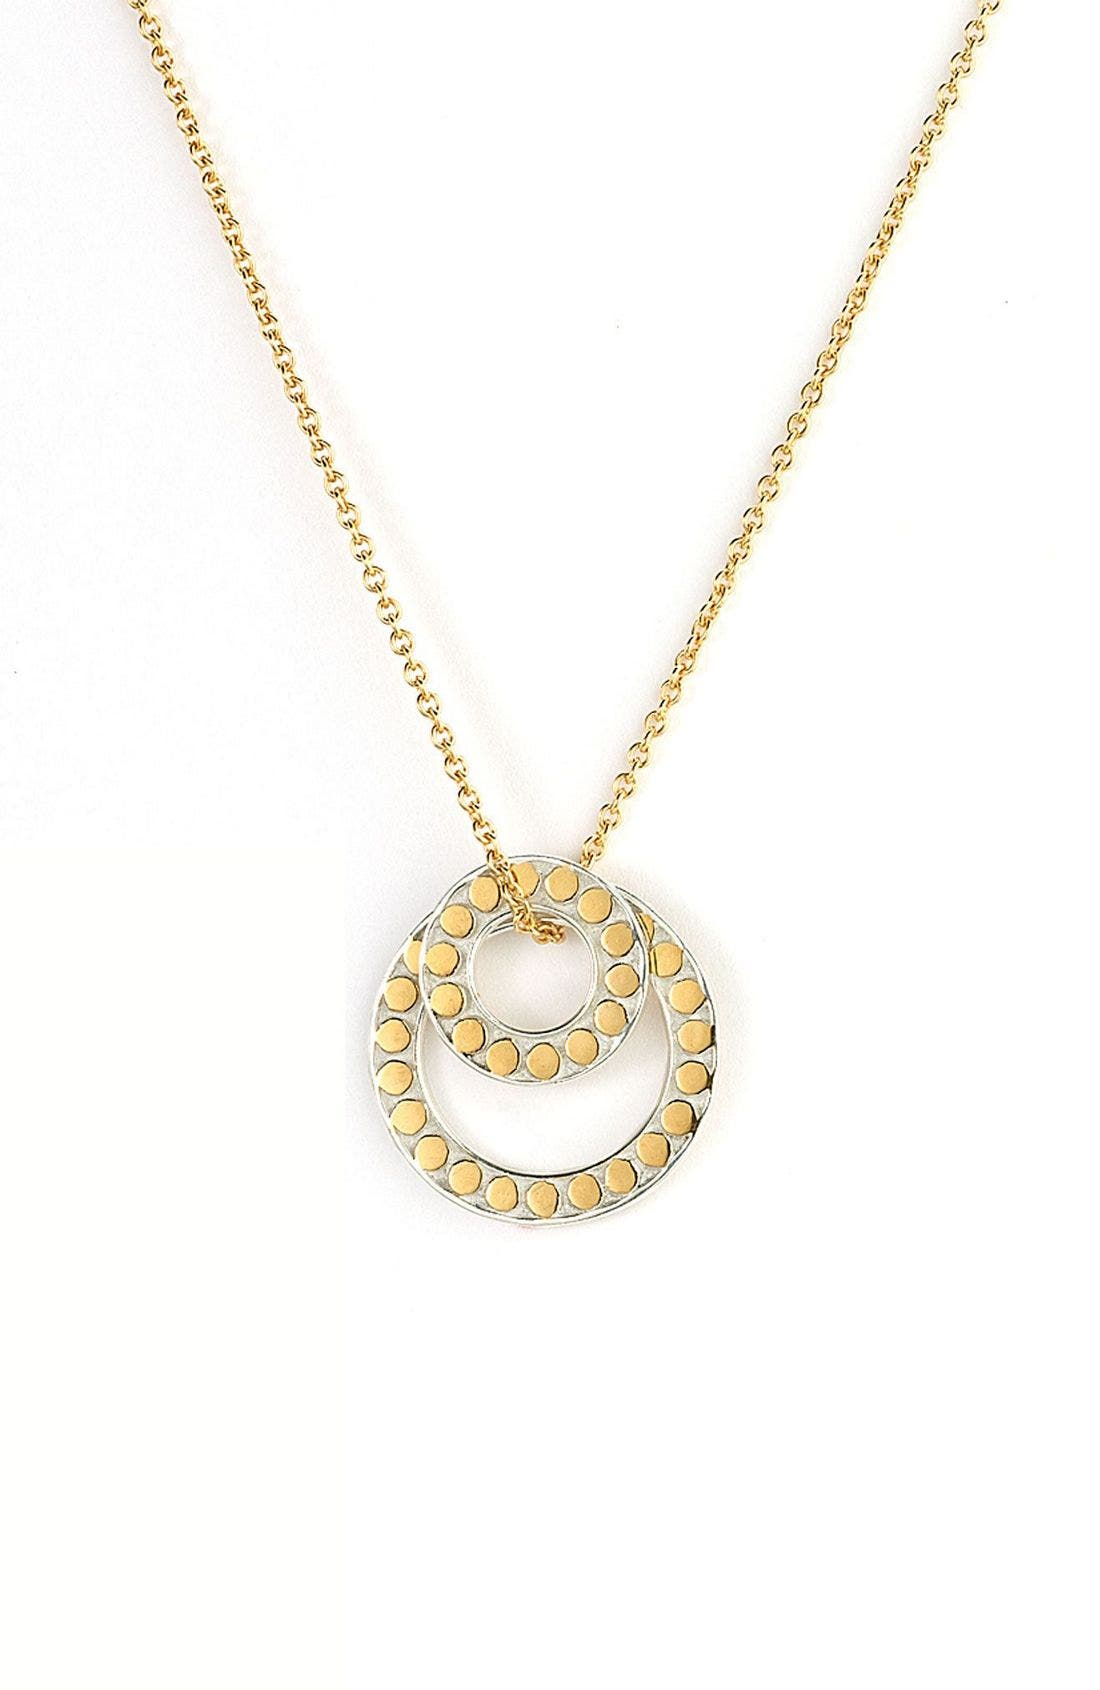 Main Image - Anna Beck 'Floating O' Double Circle Necklace